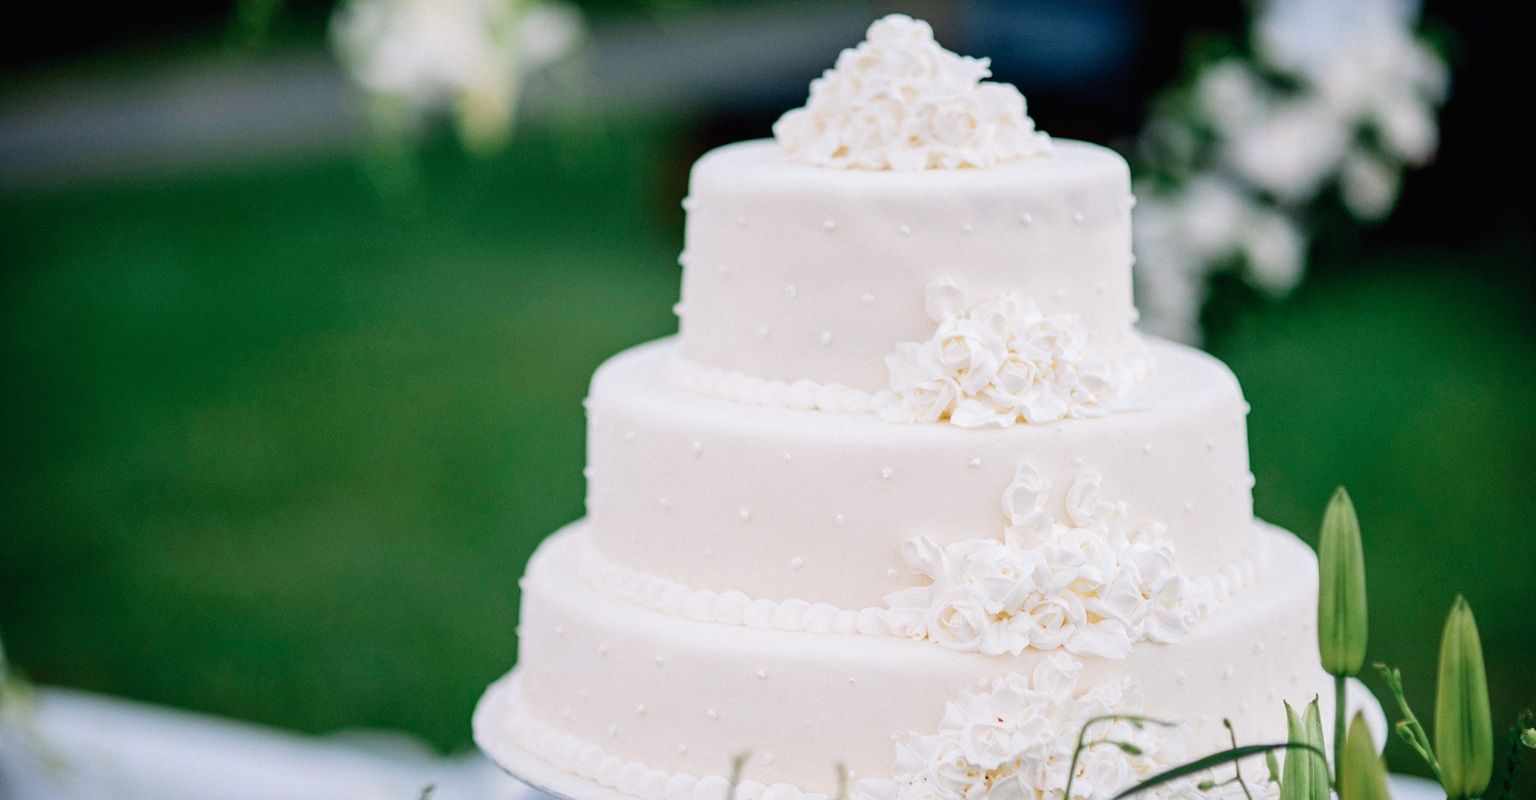 Several Factors Affect The Average Cost Of A Wedding Cake Including Size Ingredients Number Tiers Delivery Location